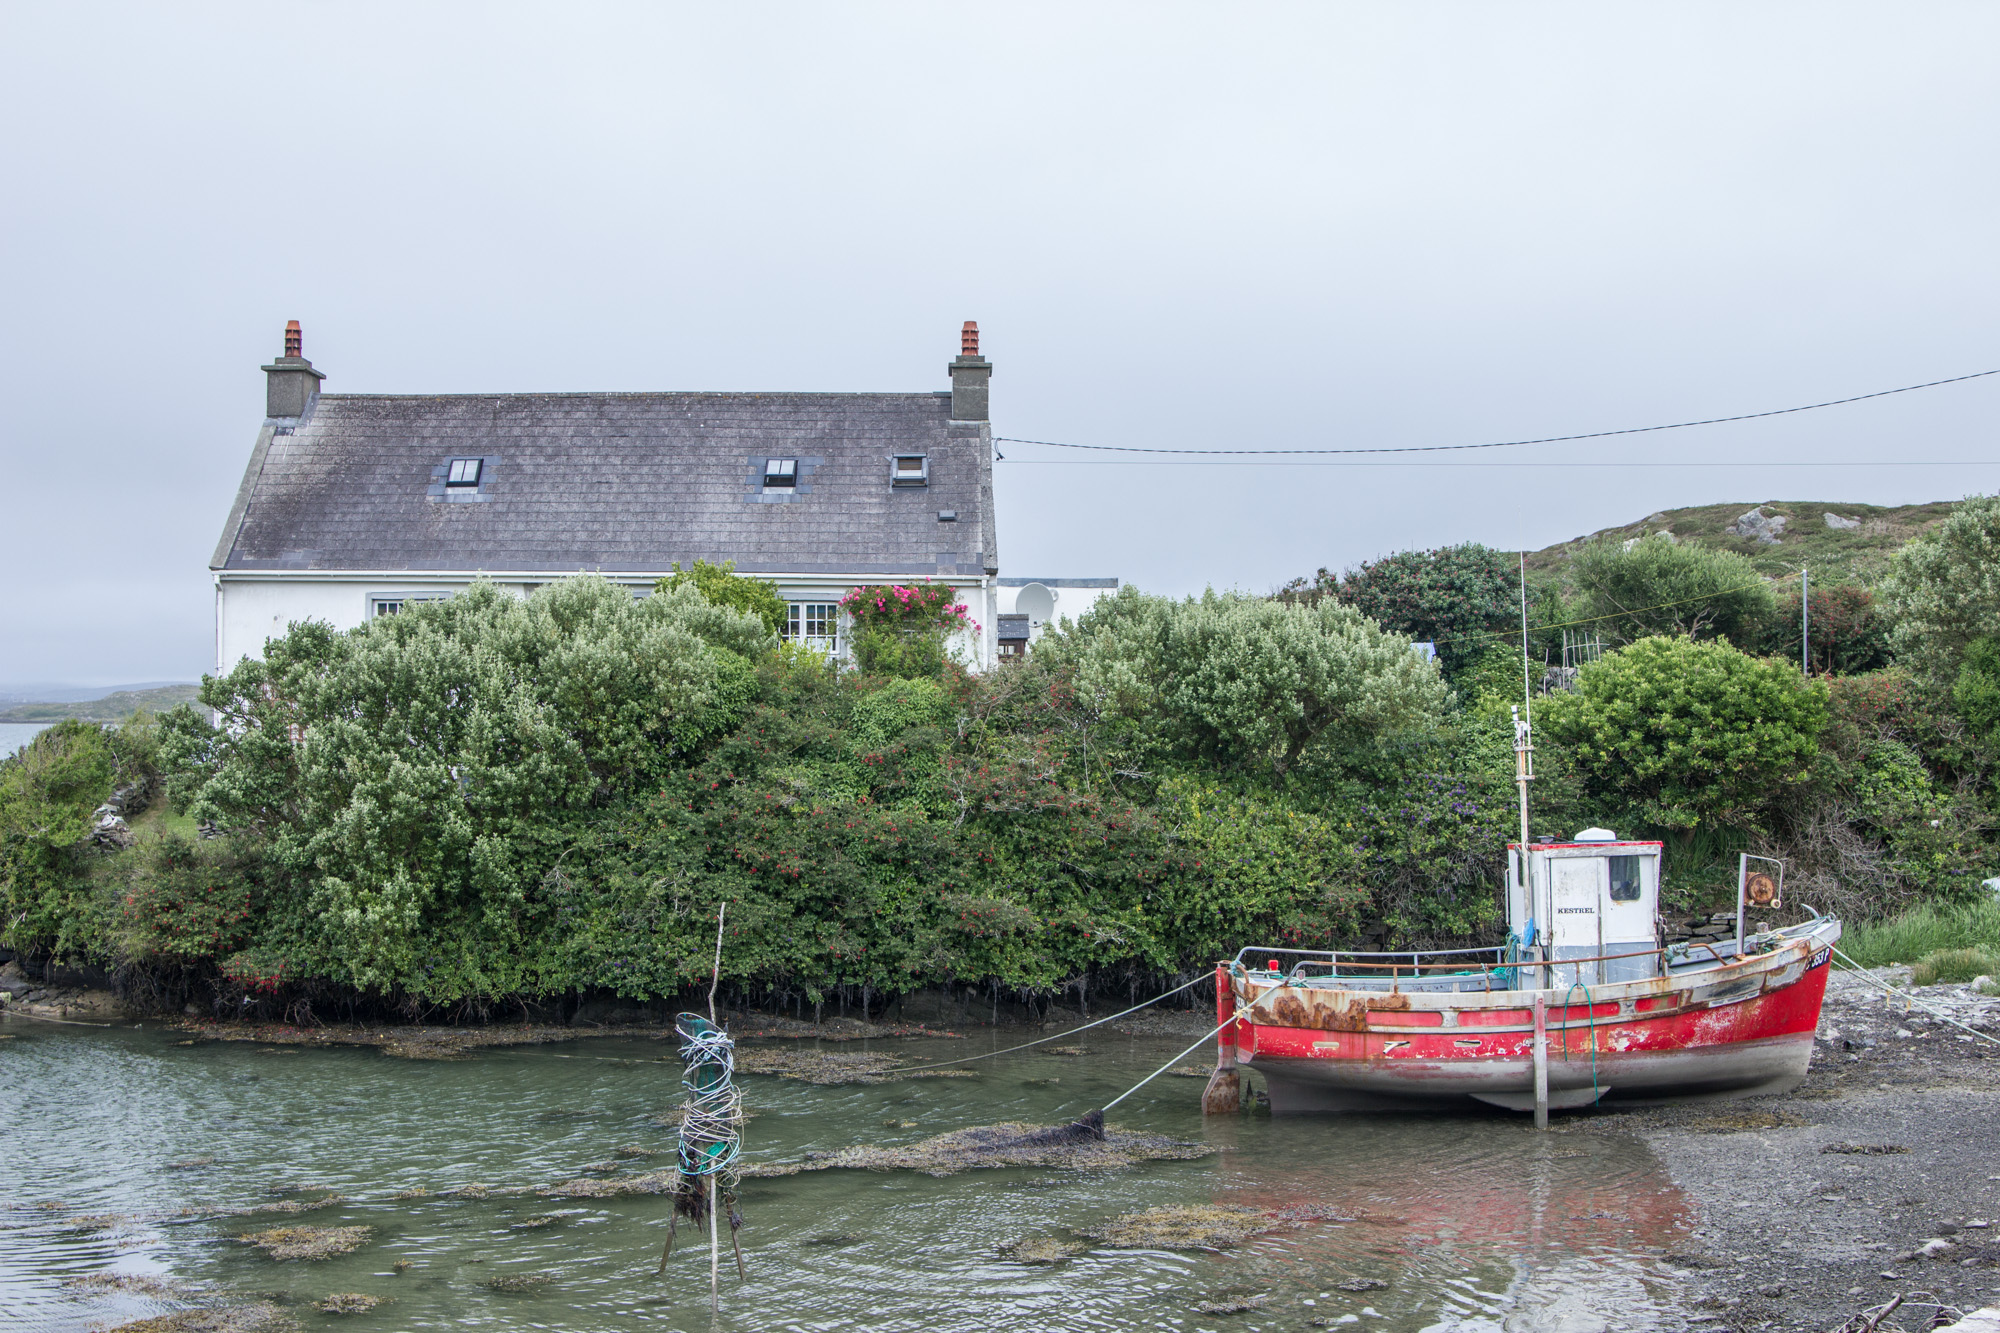 Red boat tied up to a post in the water next to trees and a house on Sherkin Island in Ireland